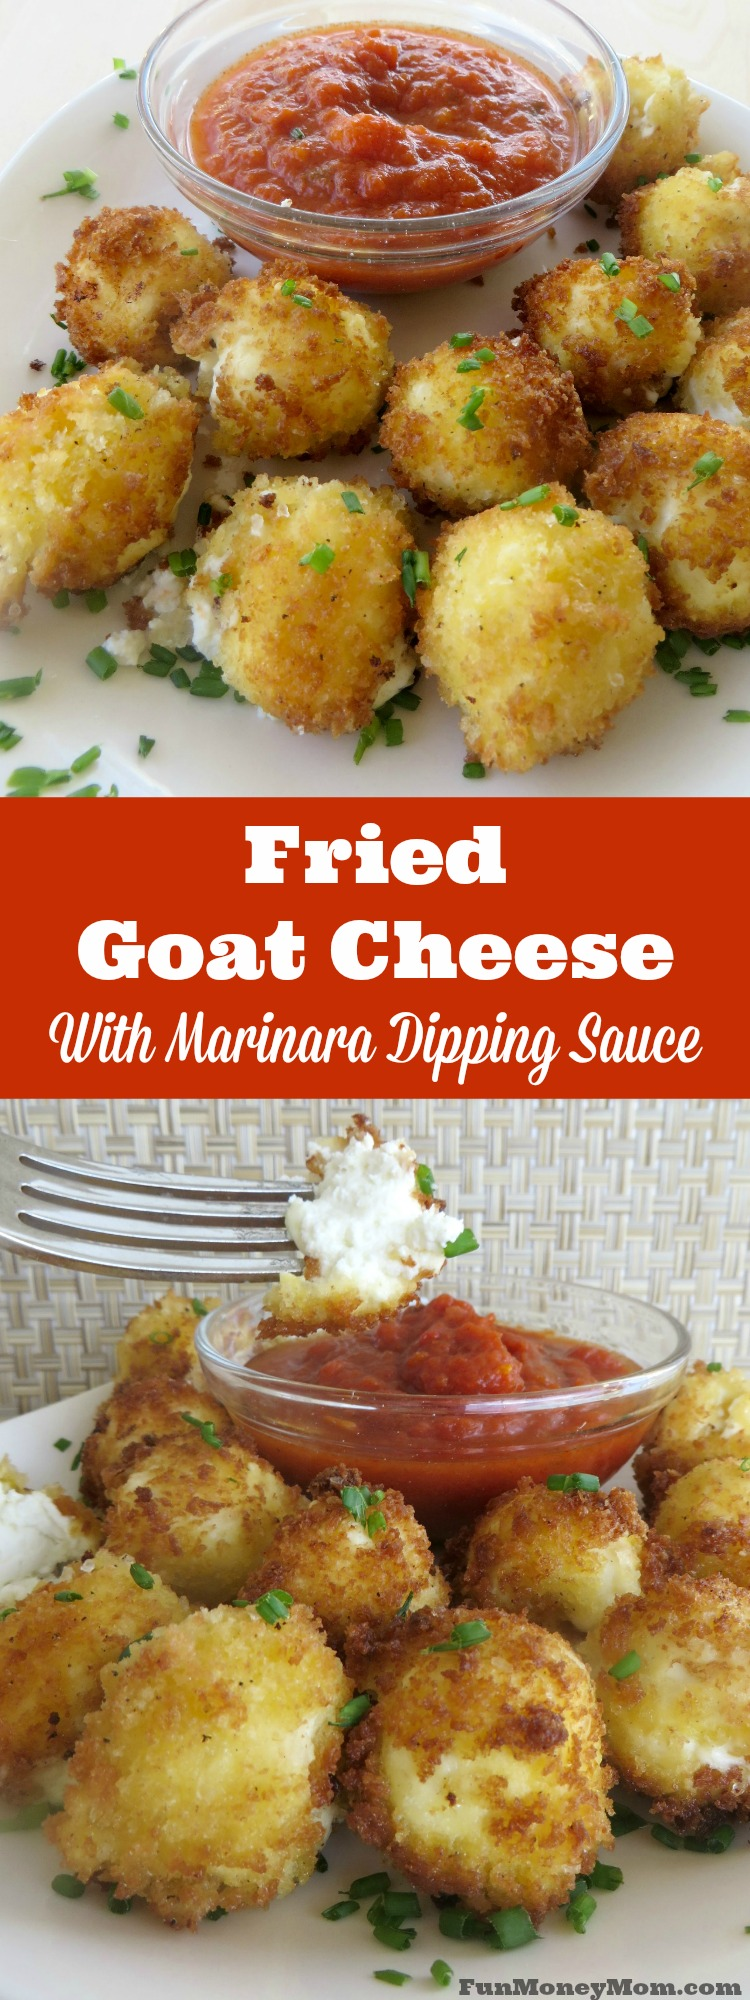 This delicious goat cheese appetizer will be the hit of your next party! Served them warm and watch them disappear!